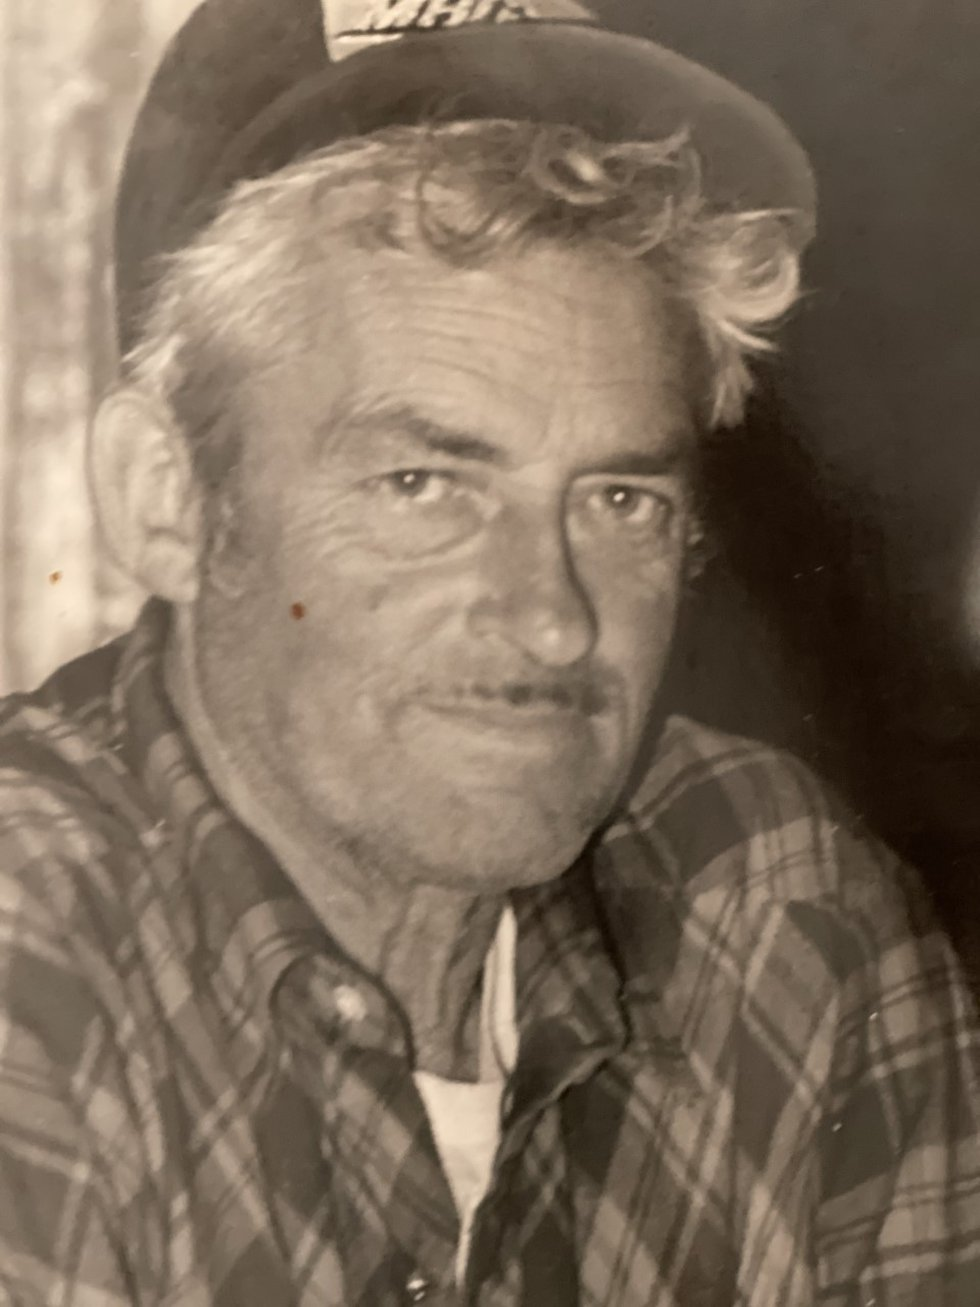 Elwood W. Calhoun, 90, passed away at his home in the town of Cape Vincent Sunday afternoon,...